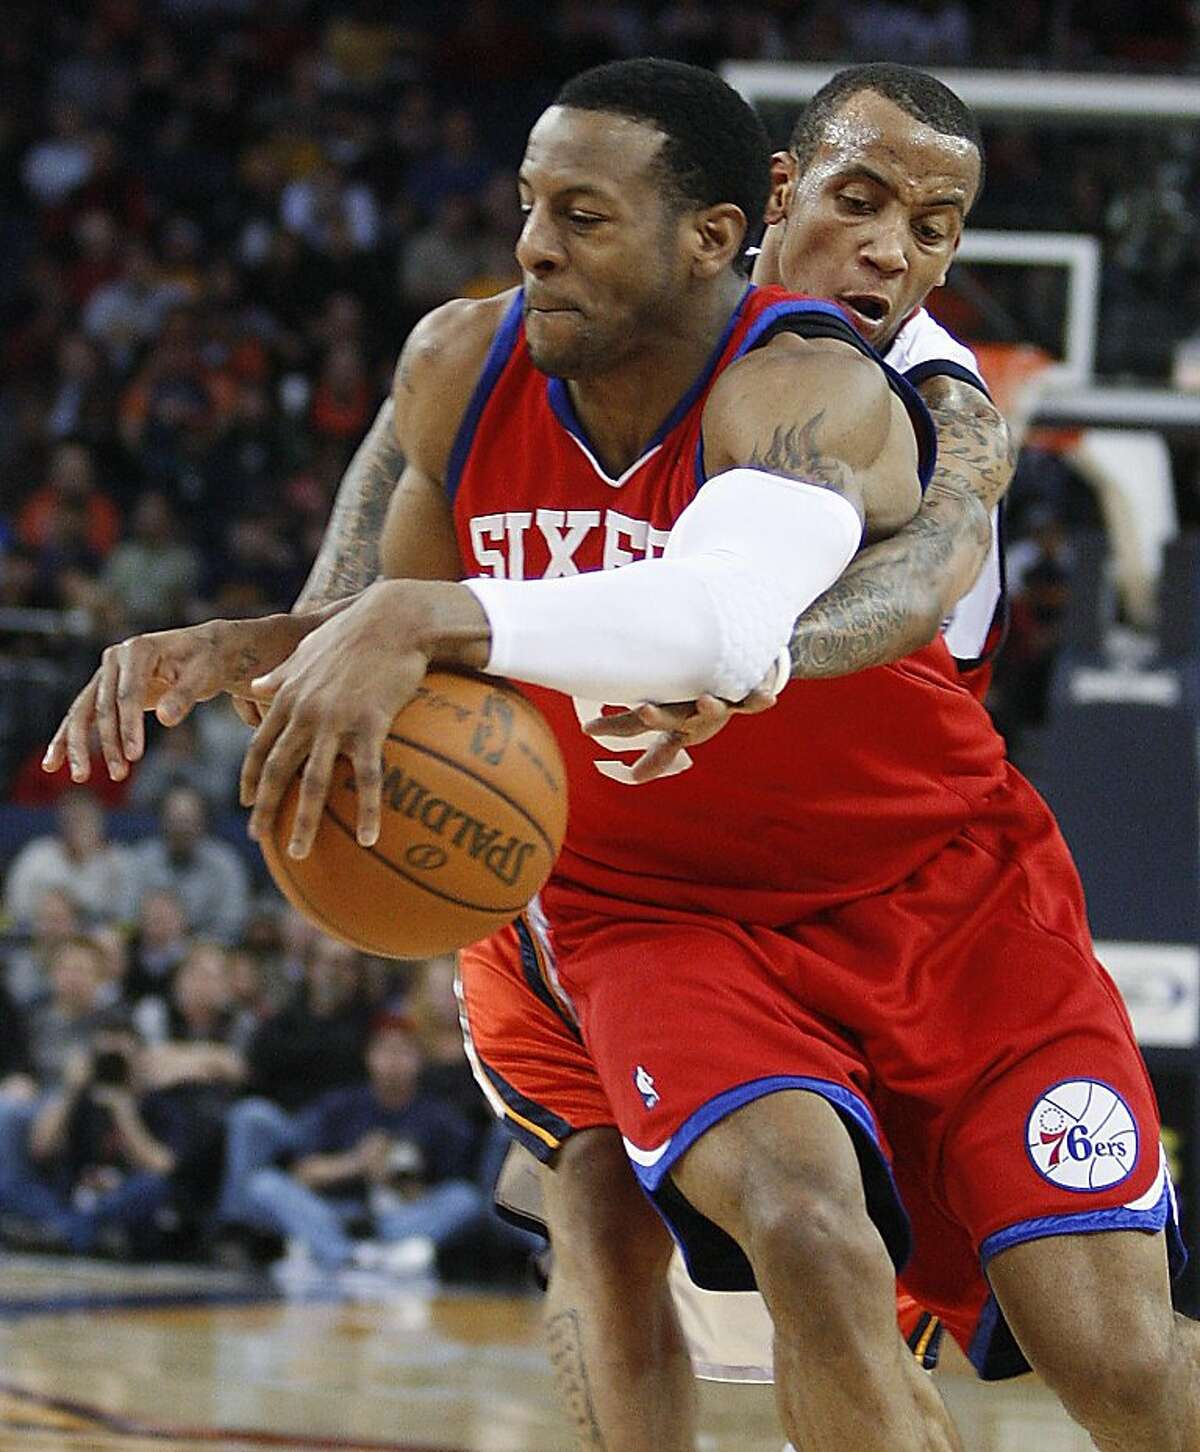 Philadelphia 76ers' Andre Iguodala (9) drives away from Golden State Warriors' Monta Ellis during the first half of an NBA basketball game Tuesday, Feb. 23, 2010, in Oakland, Calif.